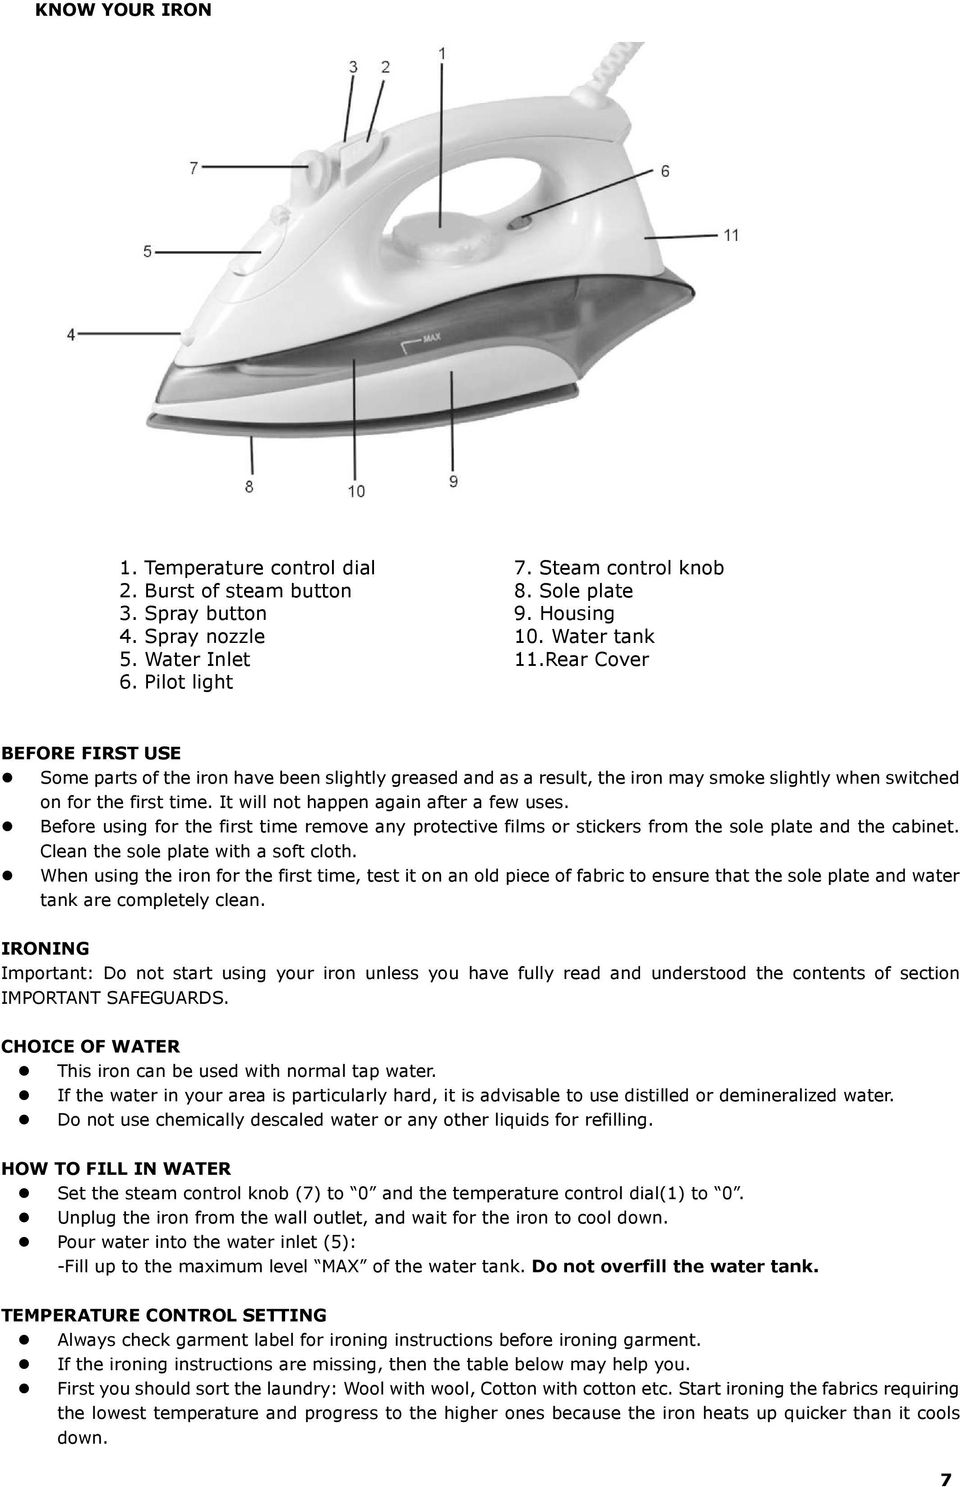 It will not happen again after a few uses. Before using for the first time remove any protective films or stickers from the sole plate and the cabinet. Clean the sole plate with a soft cloth.